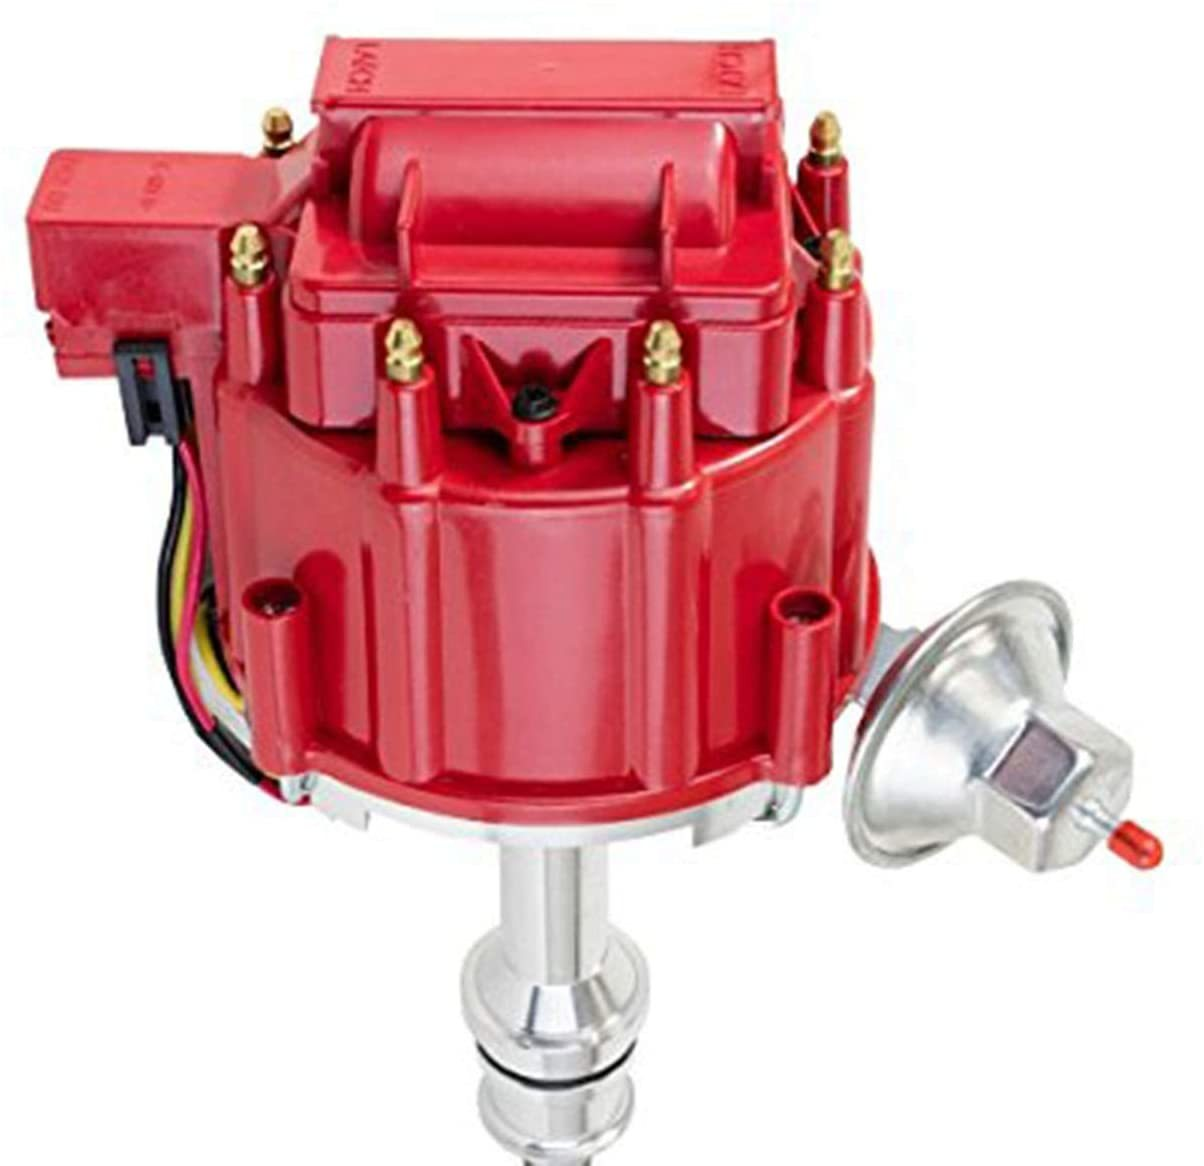 A-Team Performance SBF Ford Small Block 351W Windsor HEI Ignition Red Cap Distributor 65K Coil